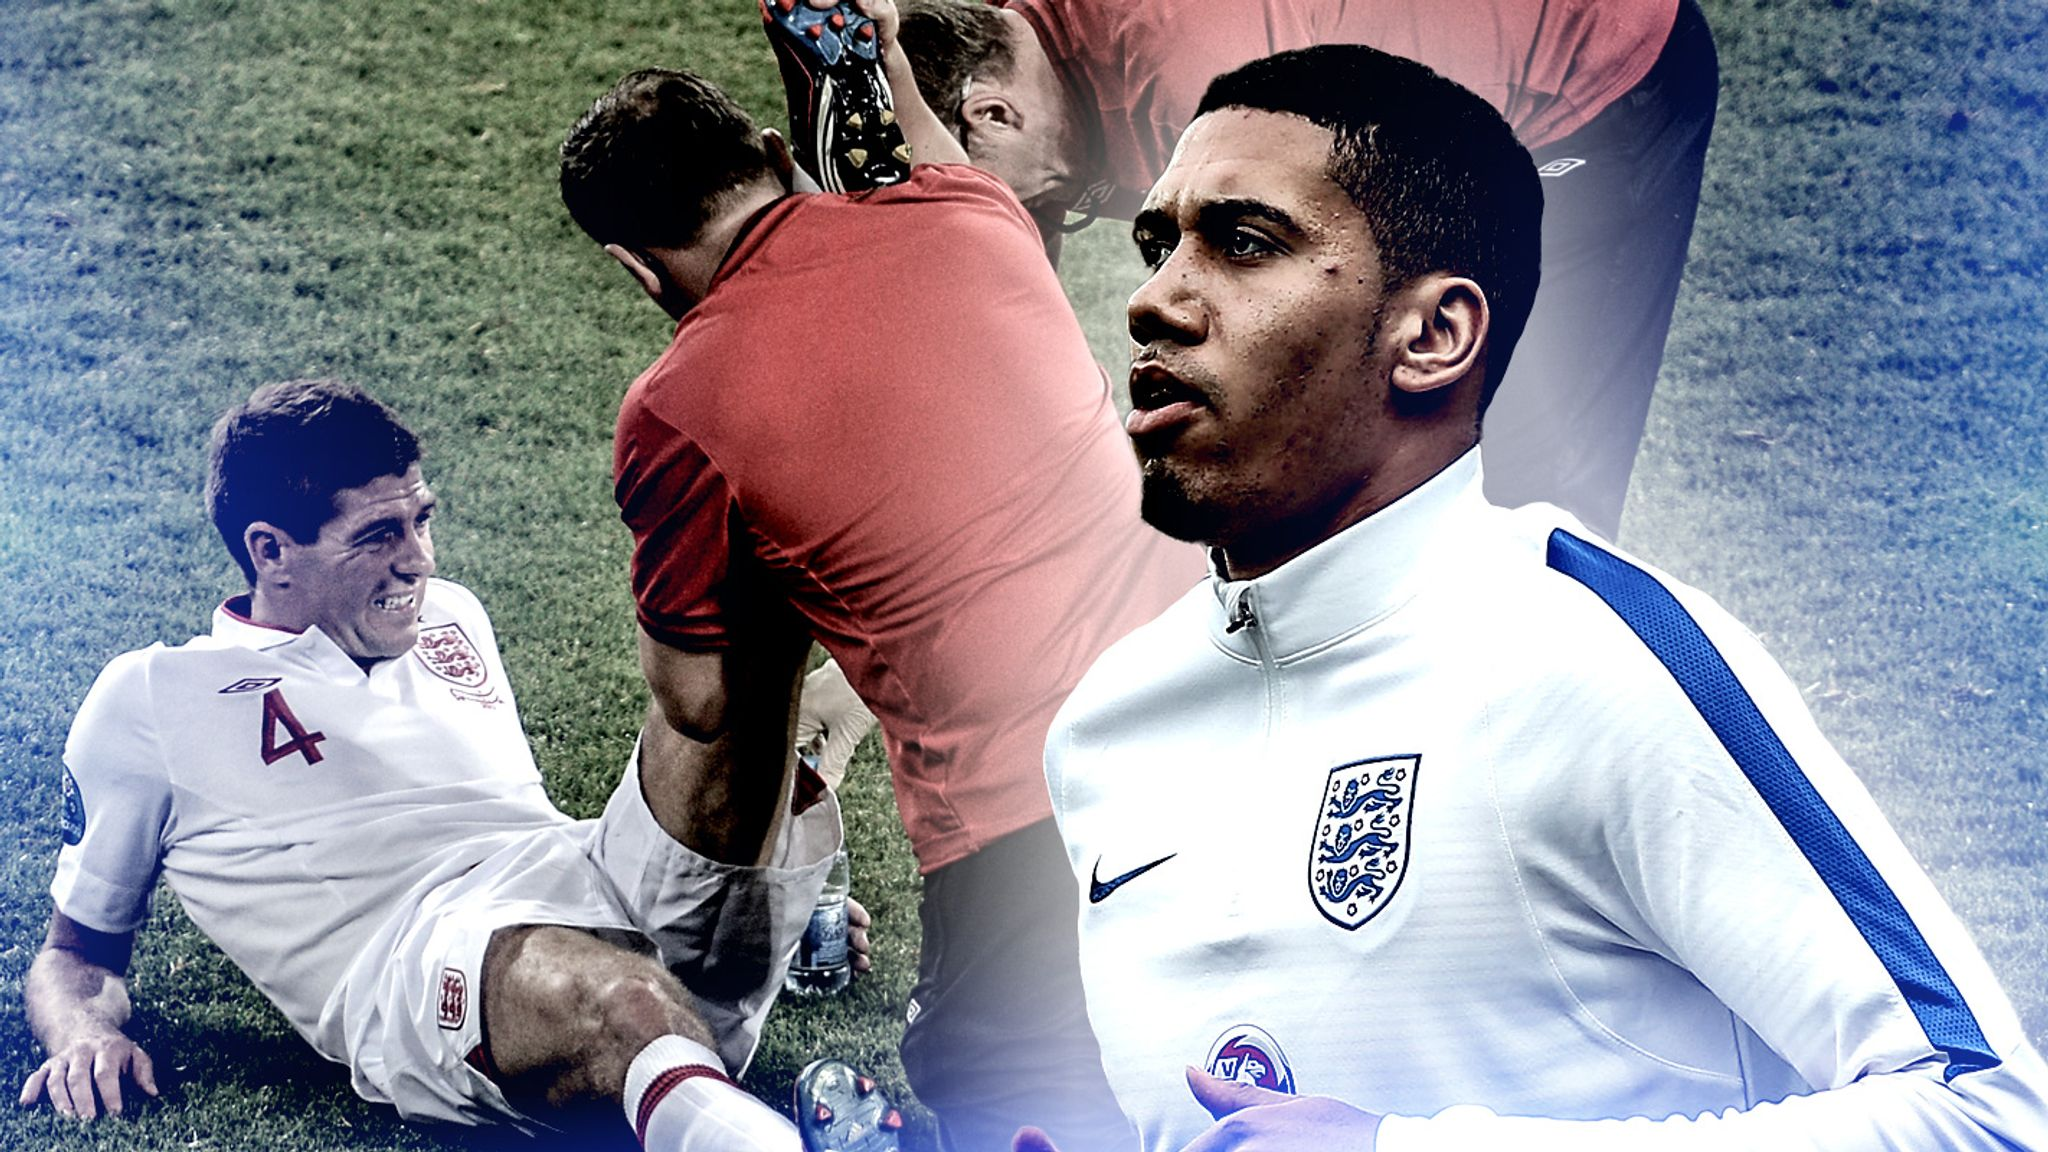 Chris Smalling most-worked player at Euro 2016 after 2015/16